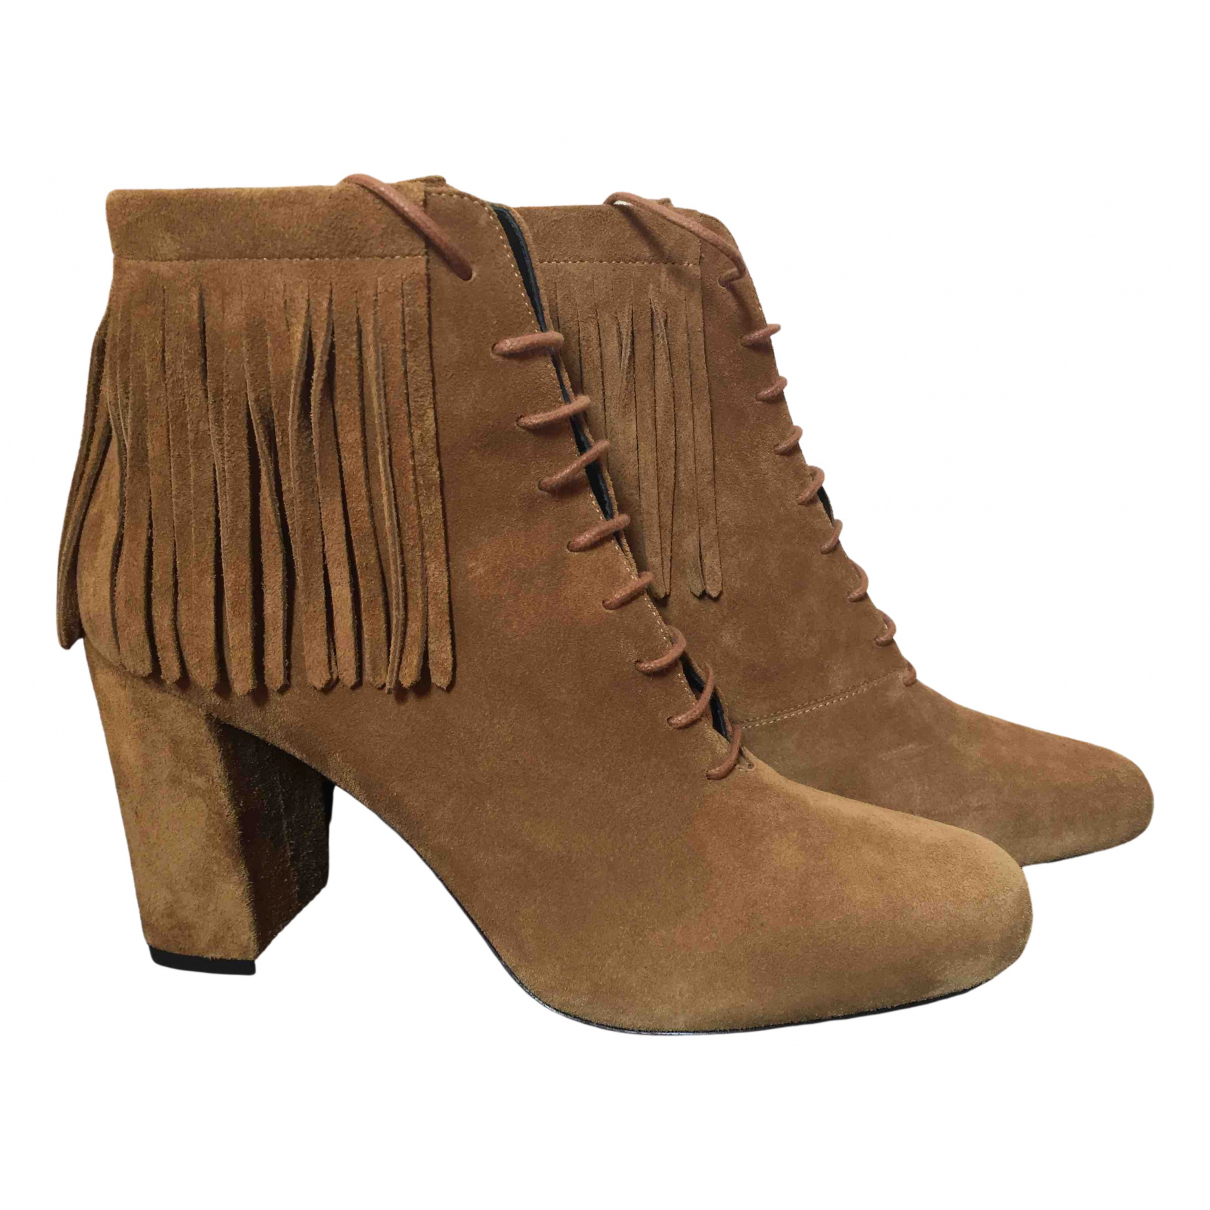 Saint Laurent N Camel Suede Ankle boots for Women 39.5 IT